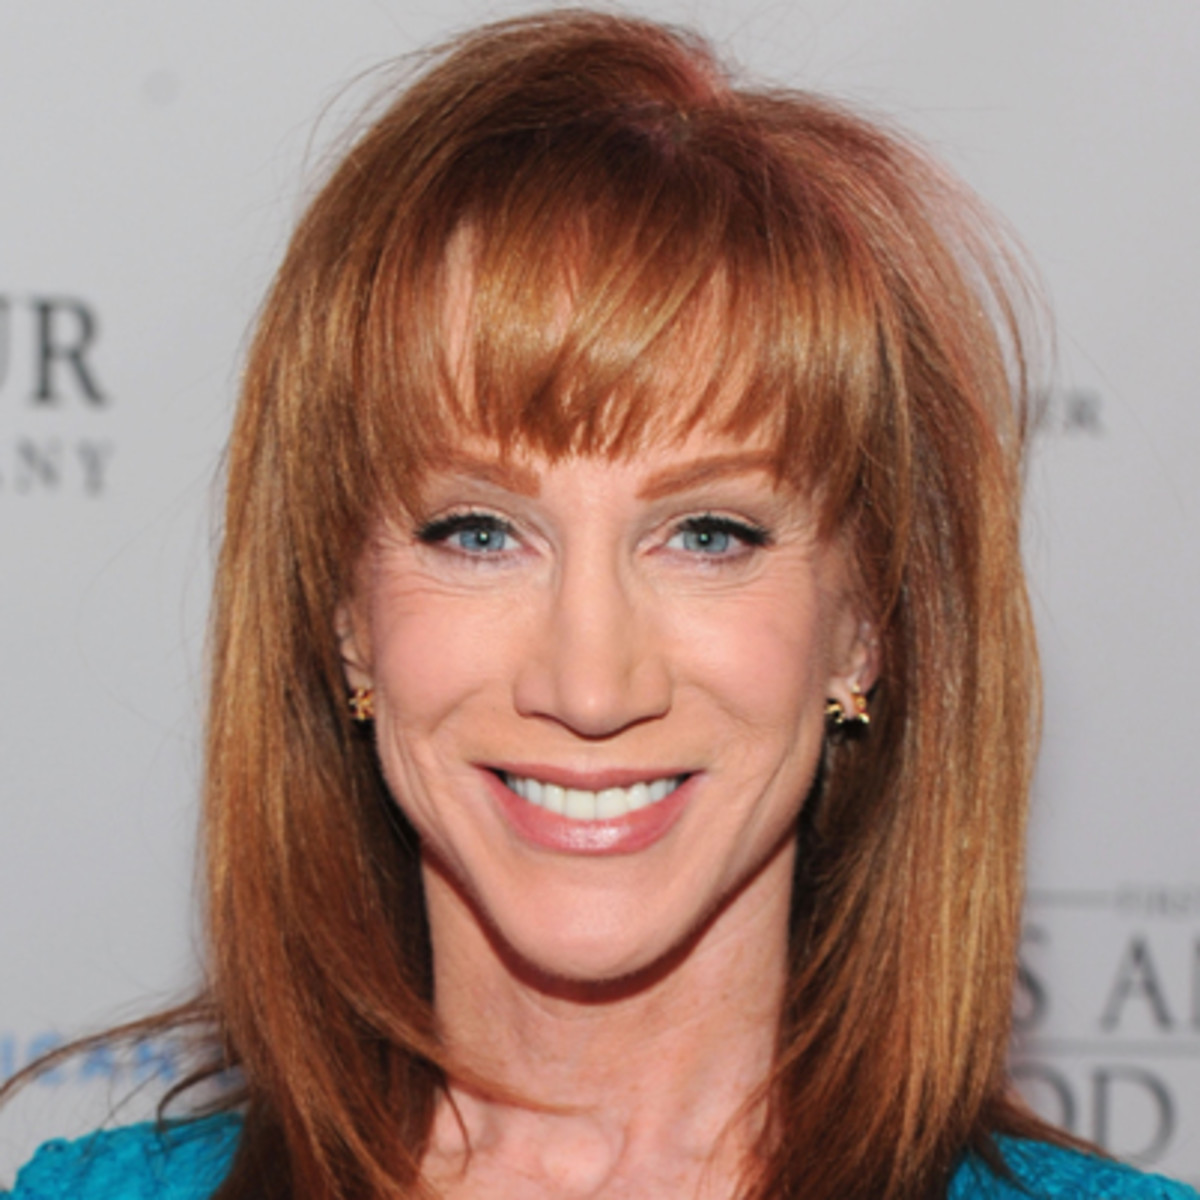 Famous Redhead Comedian Pictures to Pin on Pinterest ...